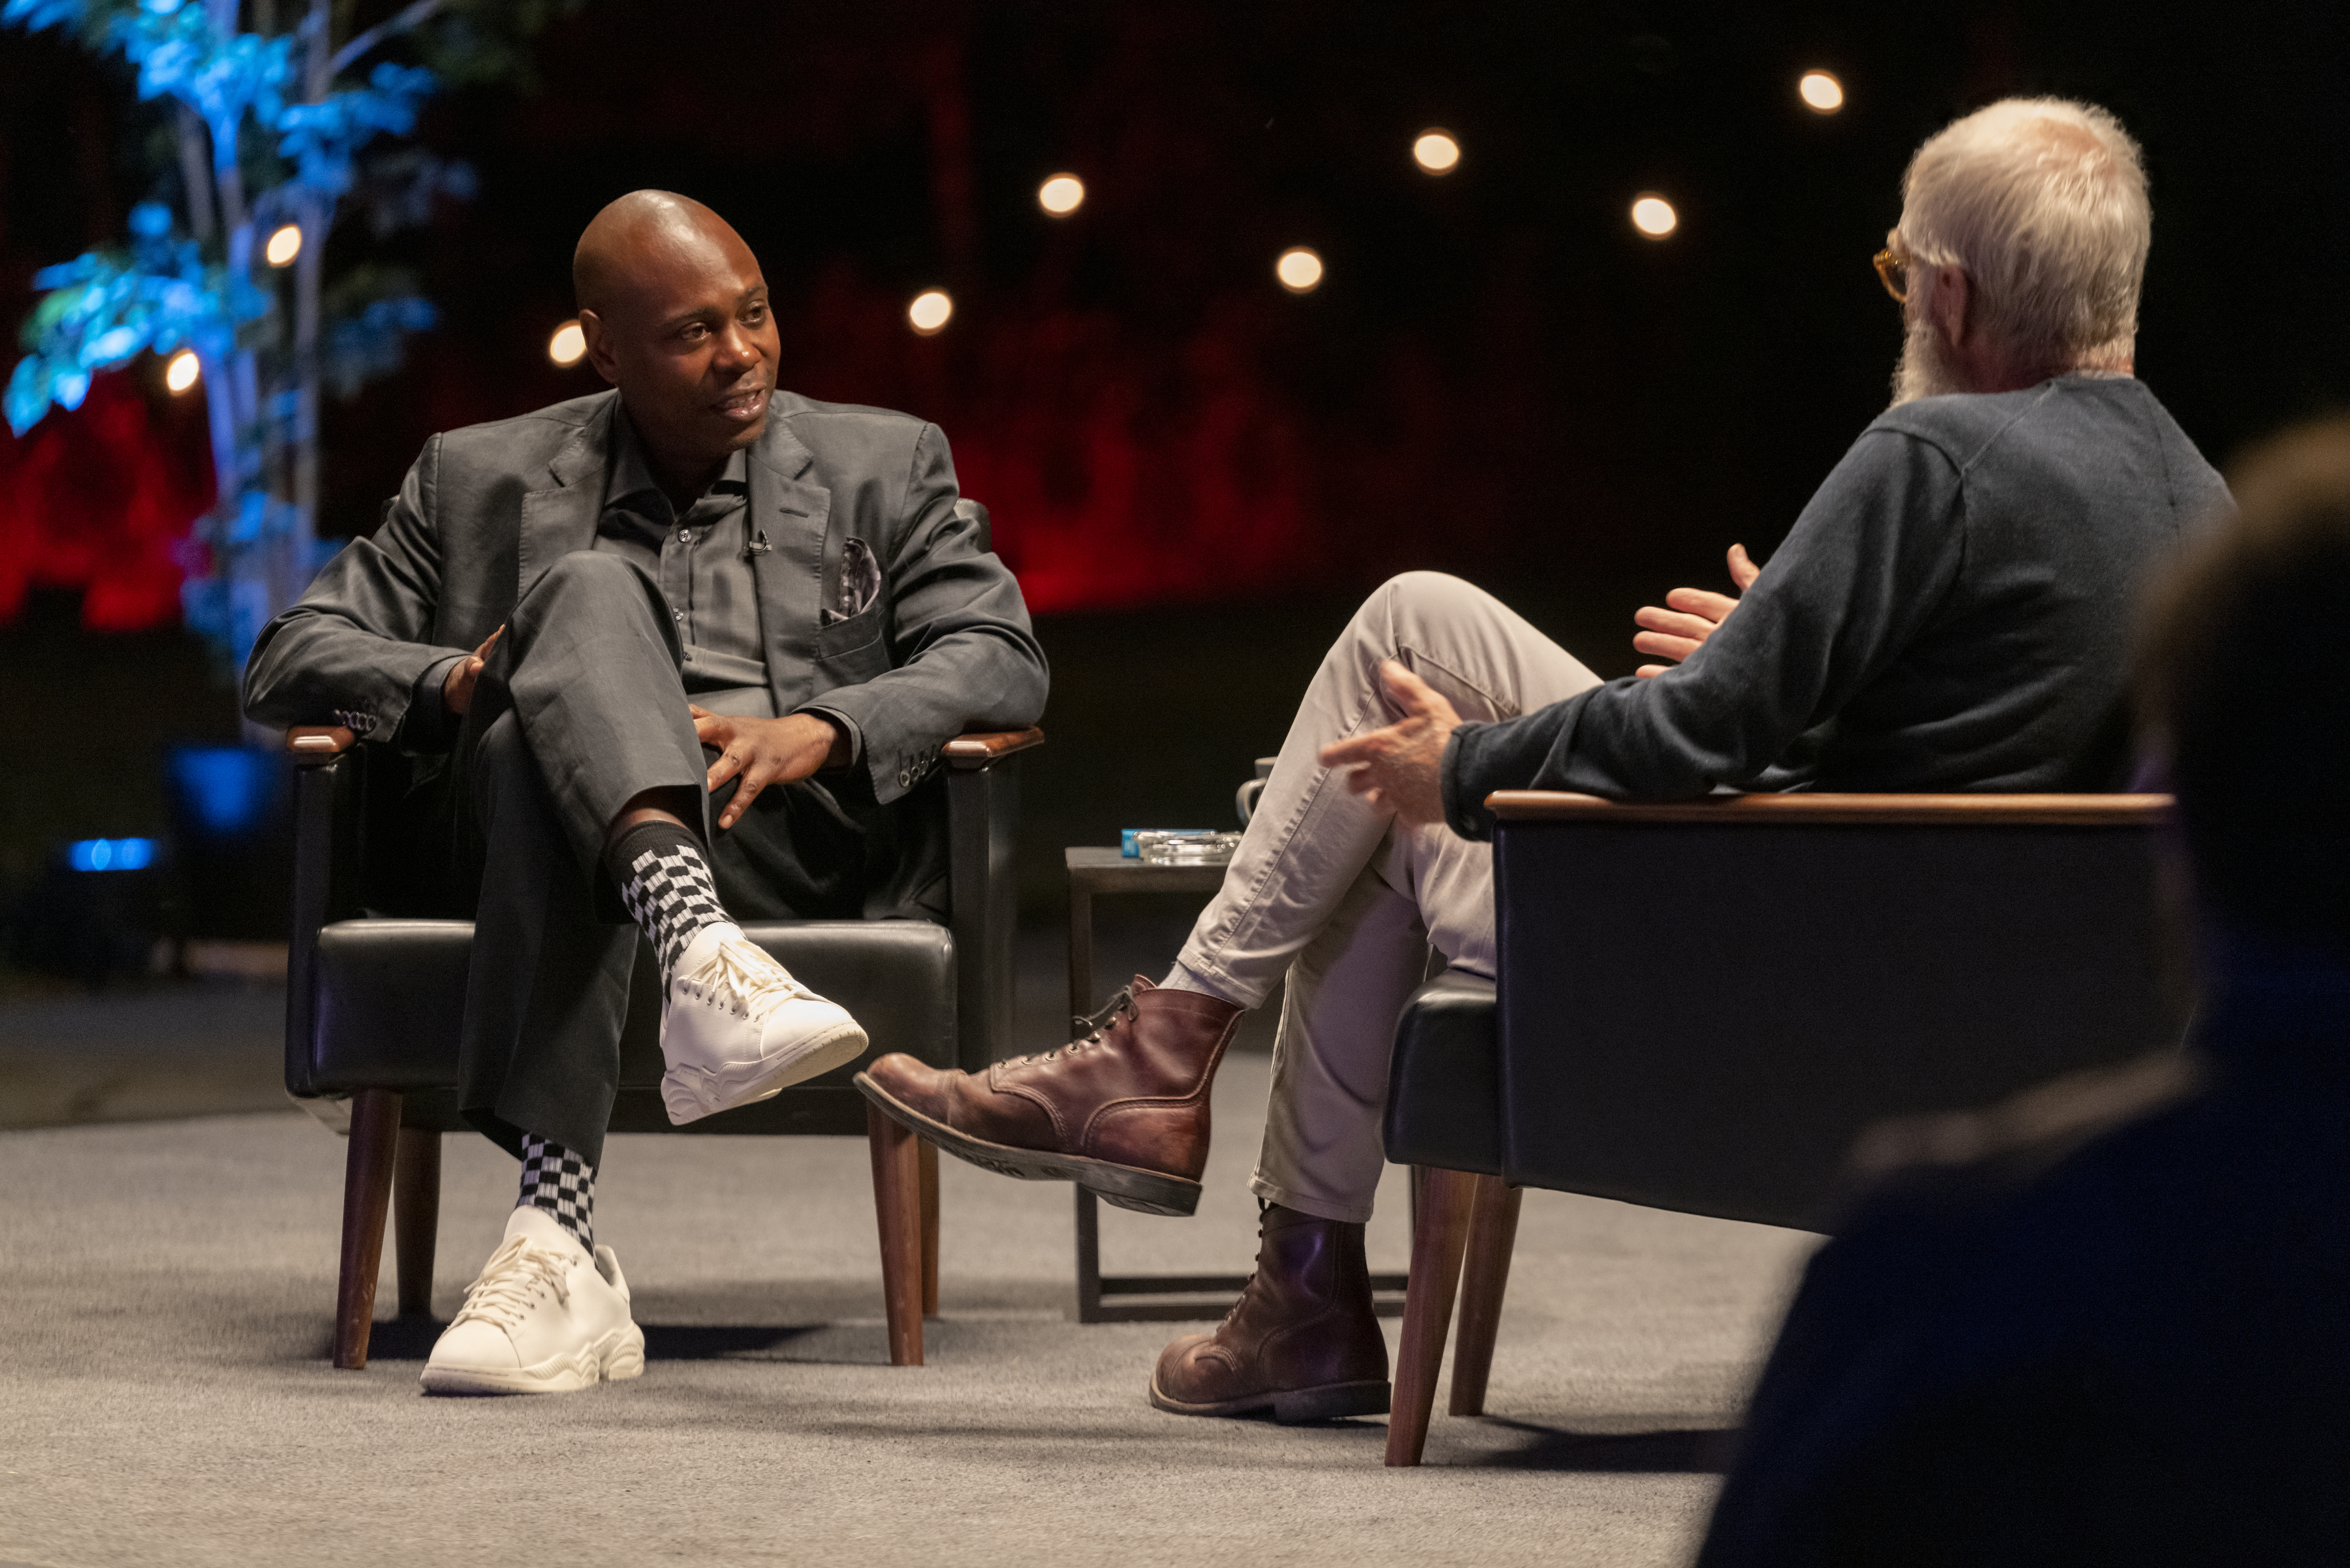 Dave Chappelle Tells David Letterman About The Moment That Made Him Walk Away From $50M 'Chappelle's Show' Deal